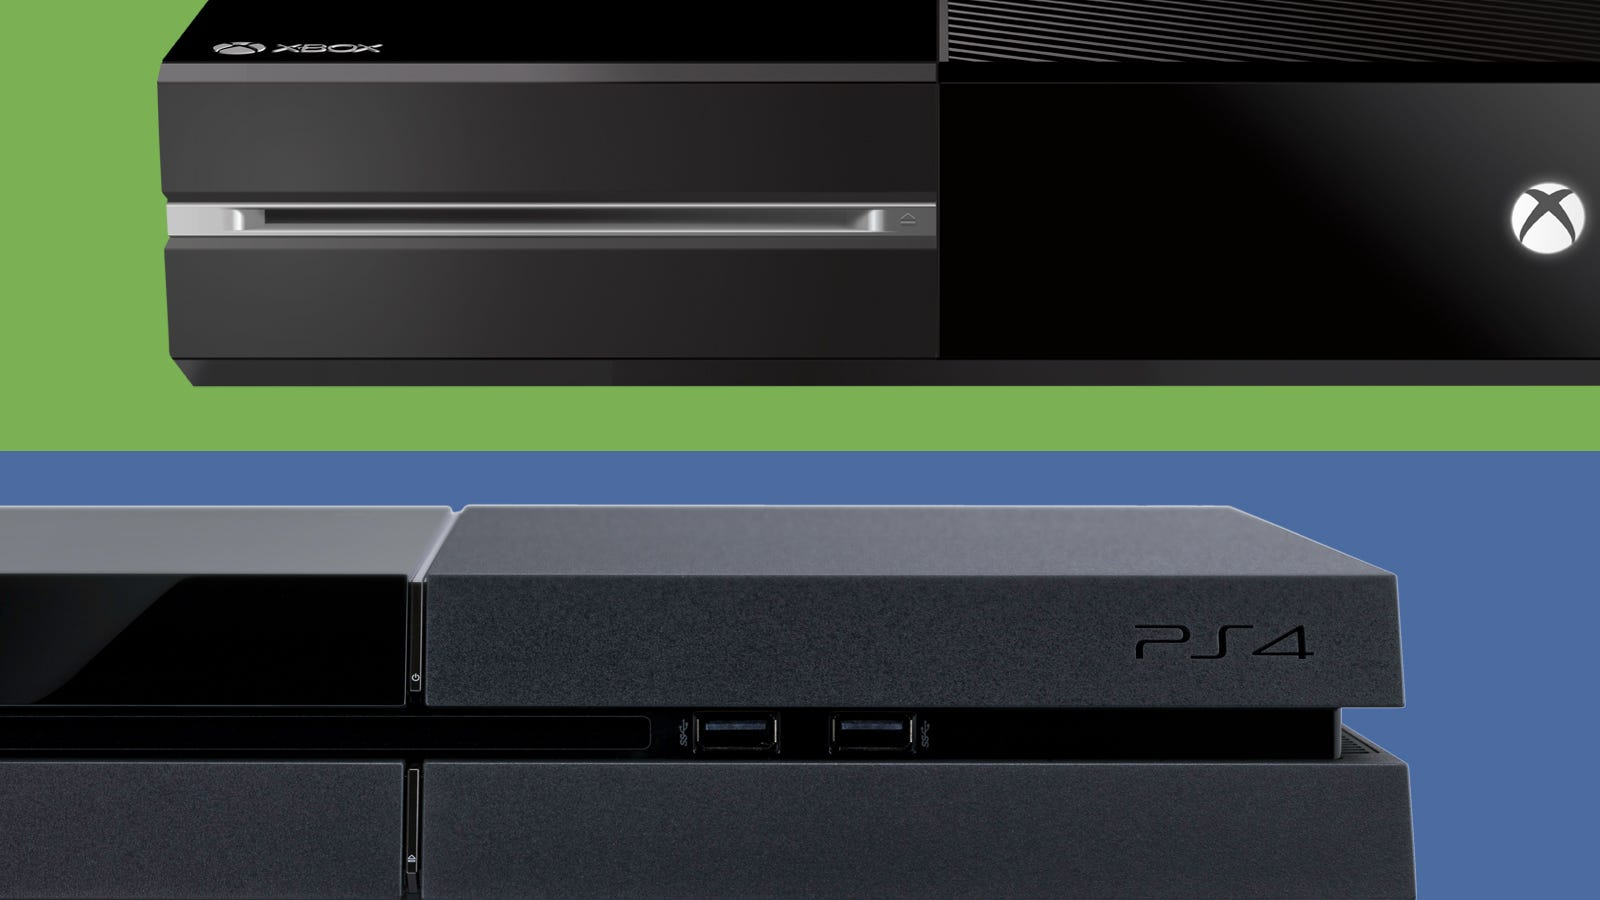 PlayStation 4 vs Xbox One, comparadas punto por punto. ¿Cuál es mejor?